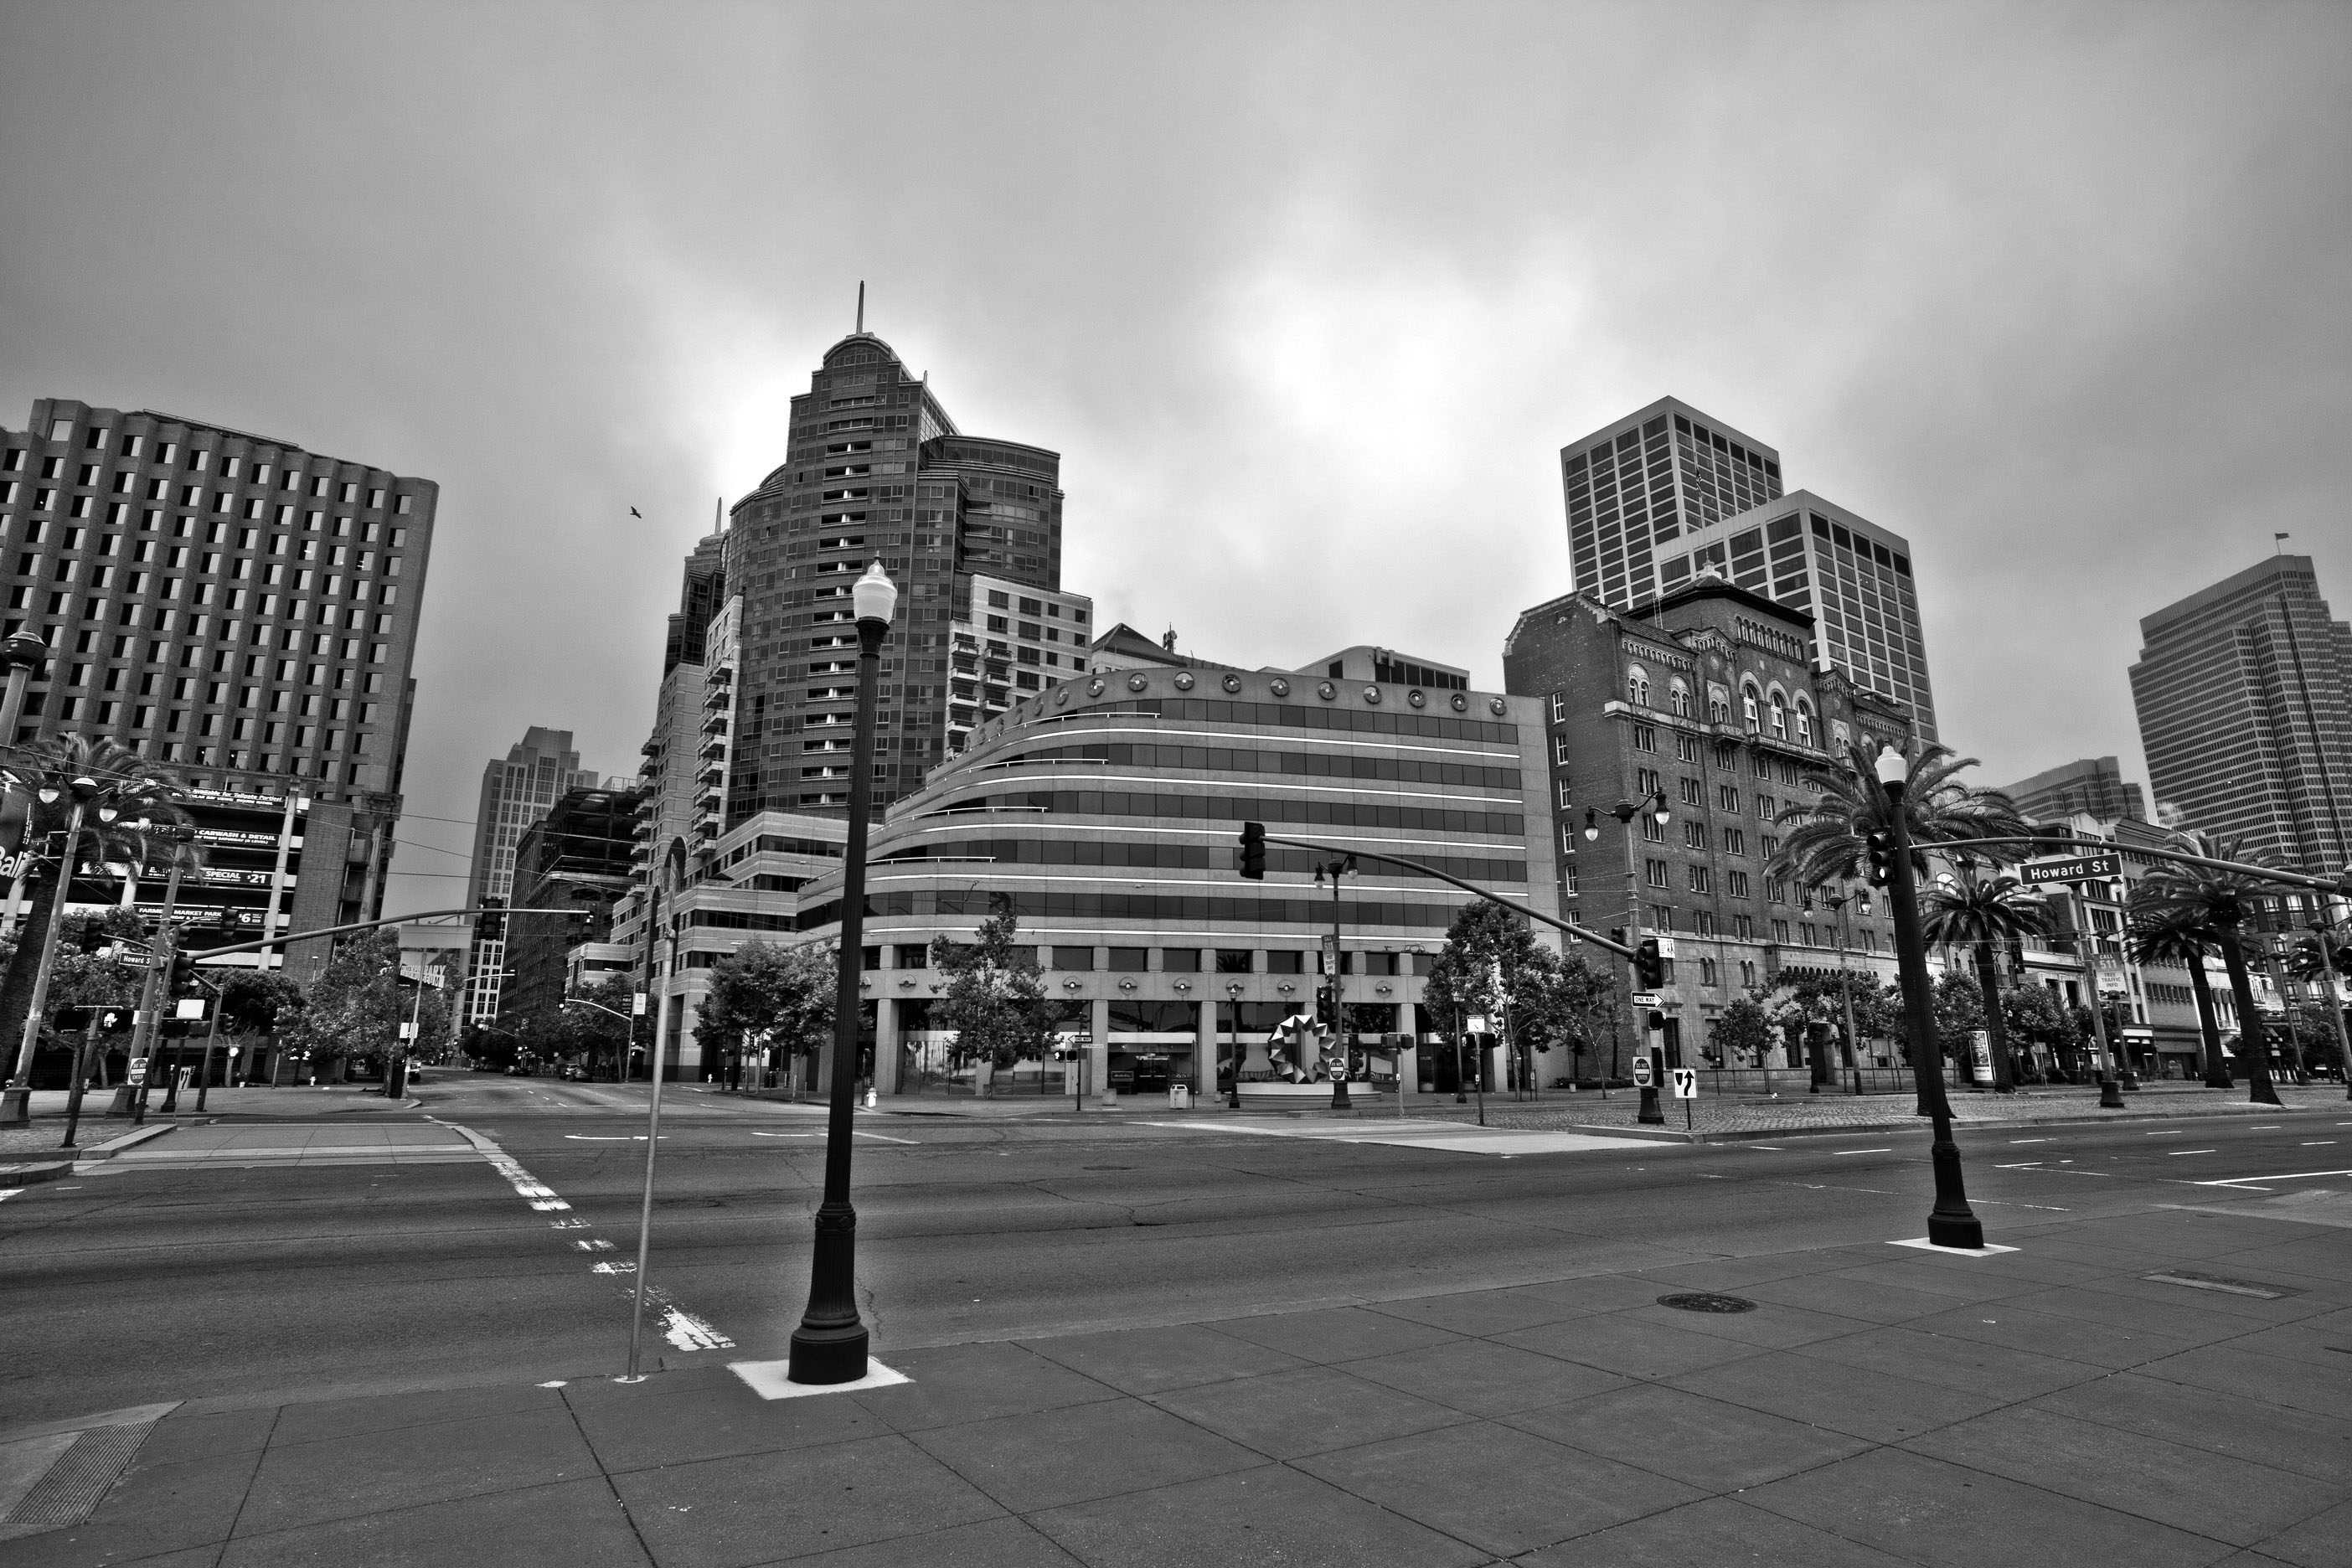 Architecture cnr Howard and The Embarcadero San Francisco CA July 2011 05